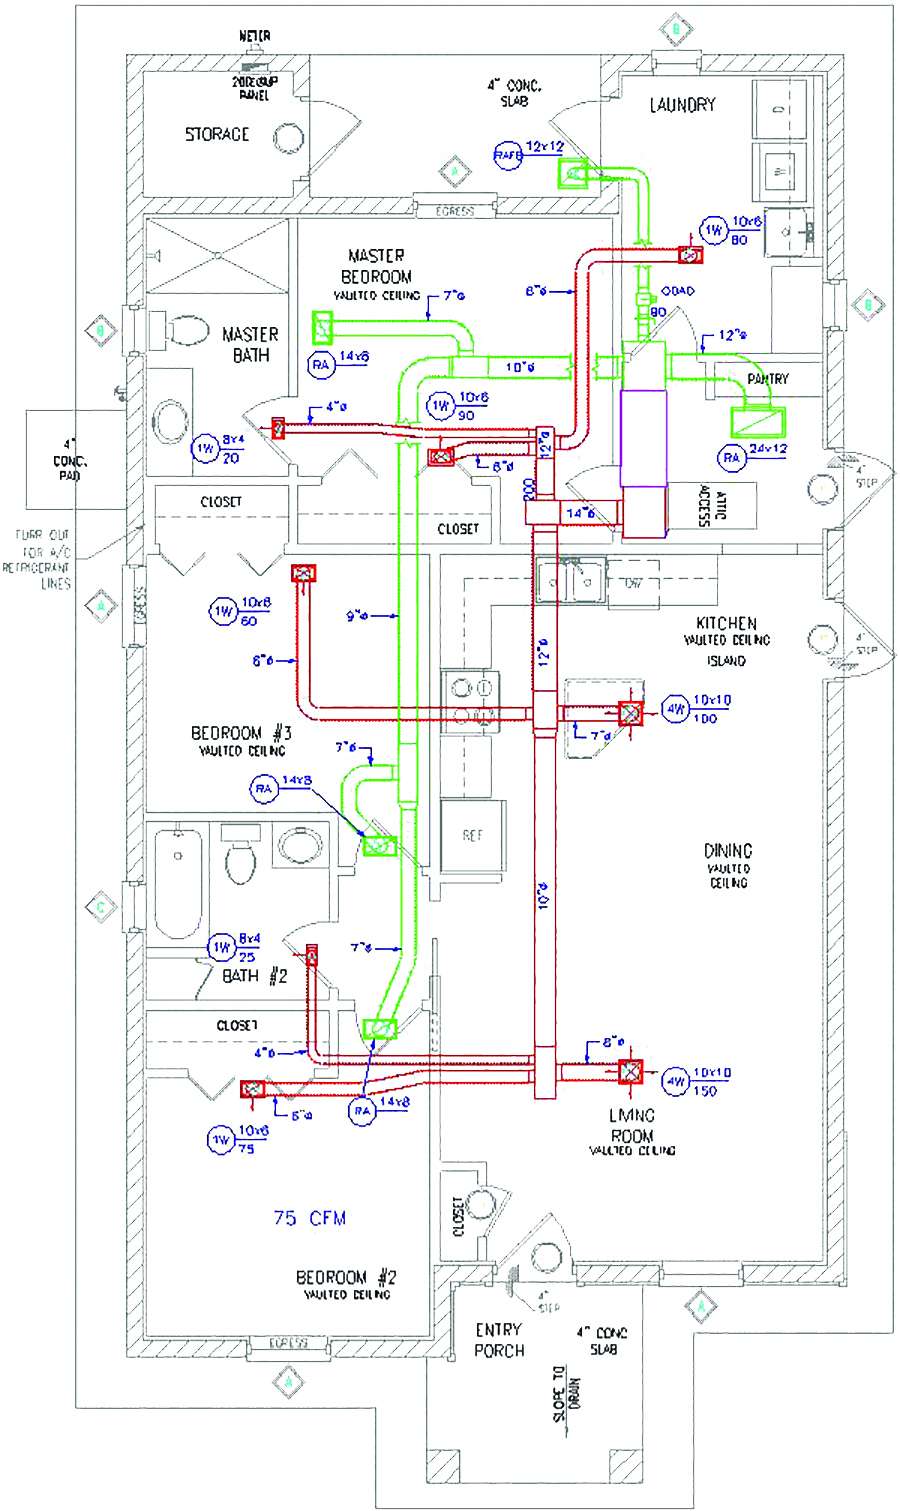 integrating compact and buried duct systems